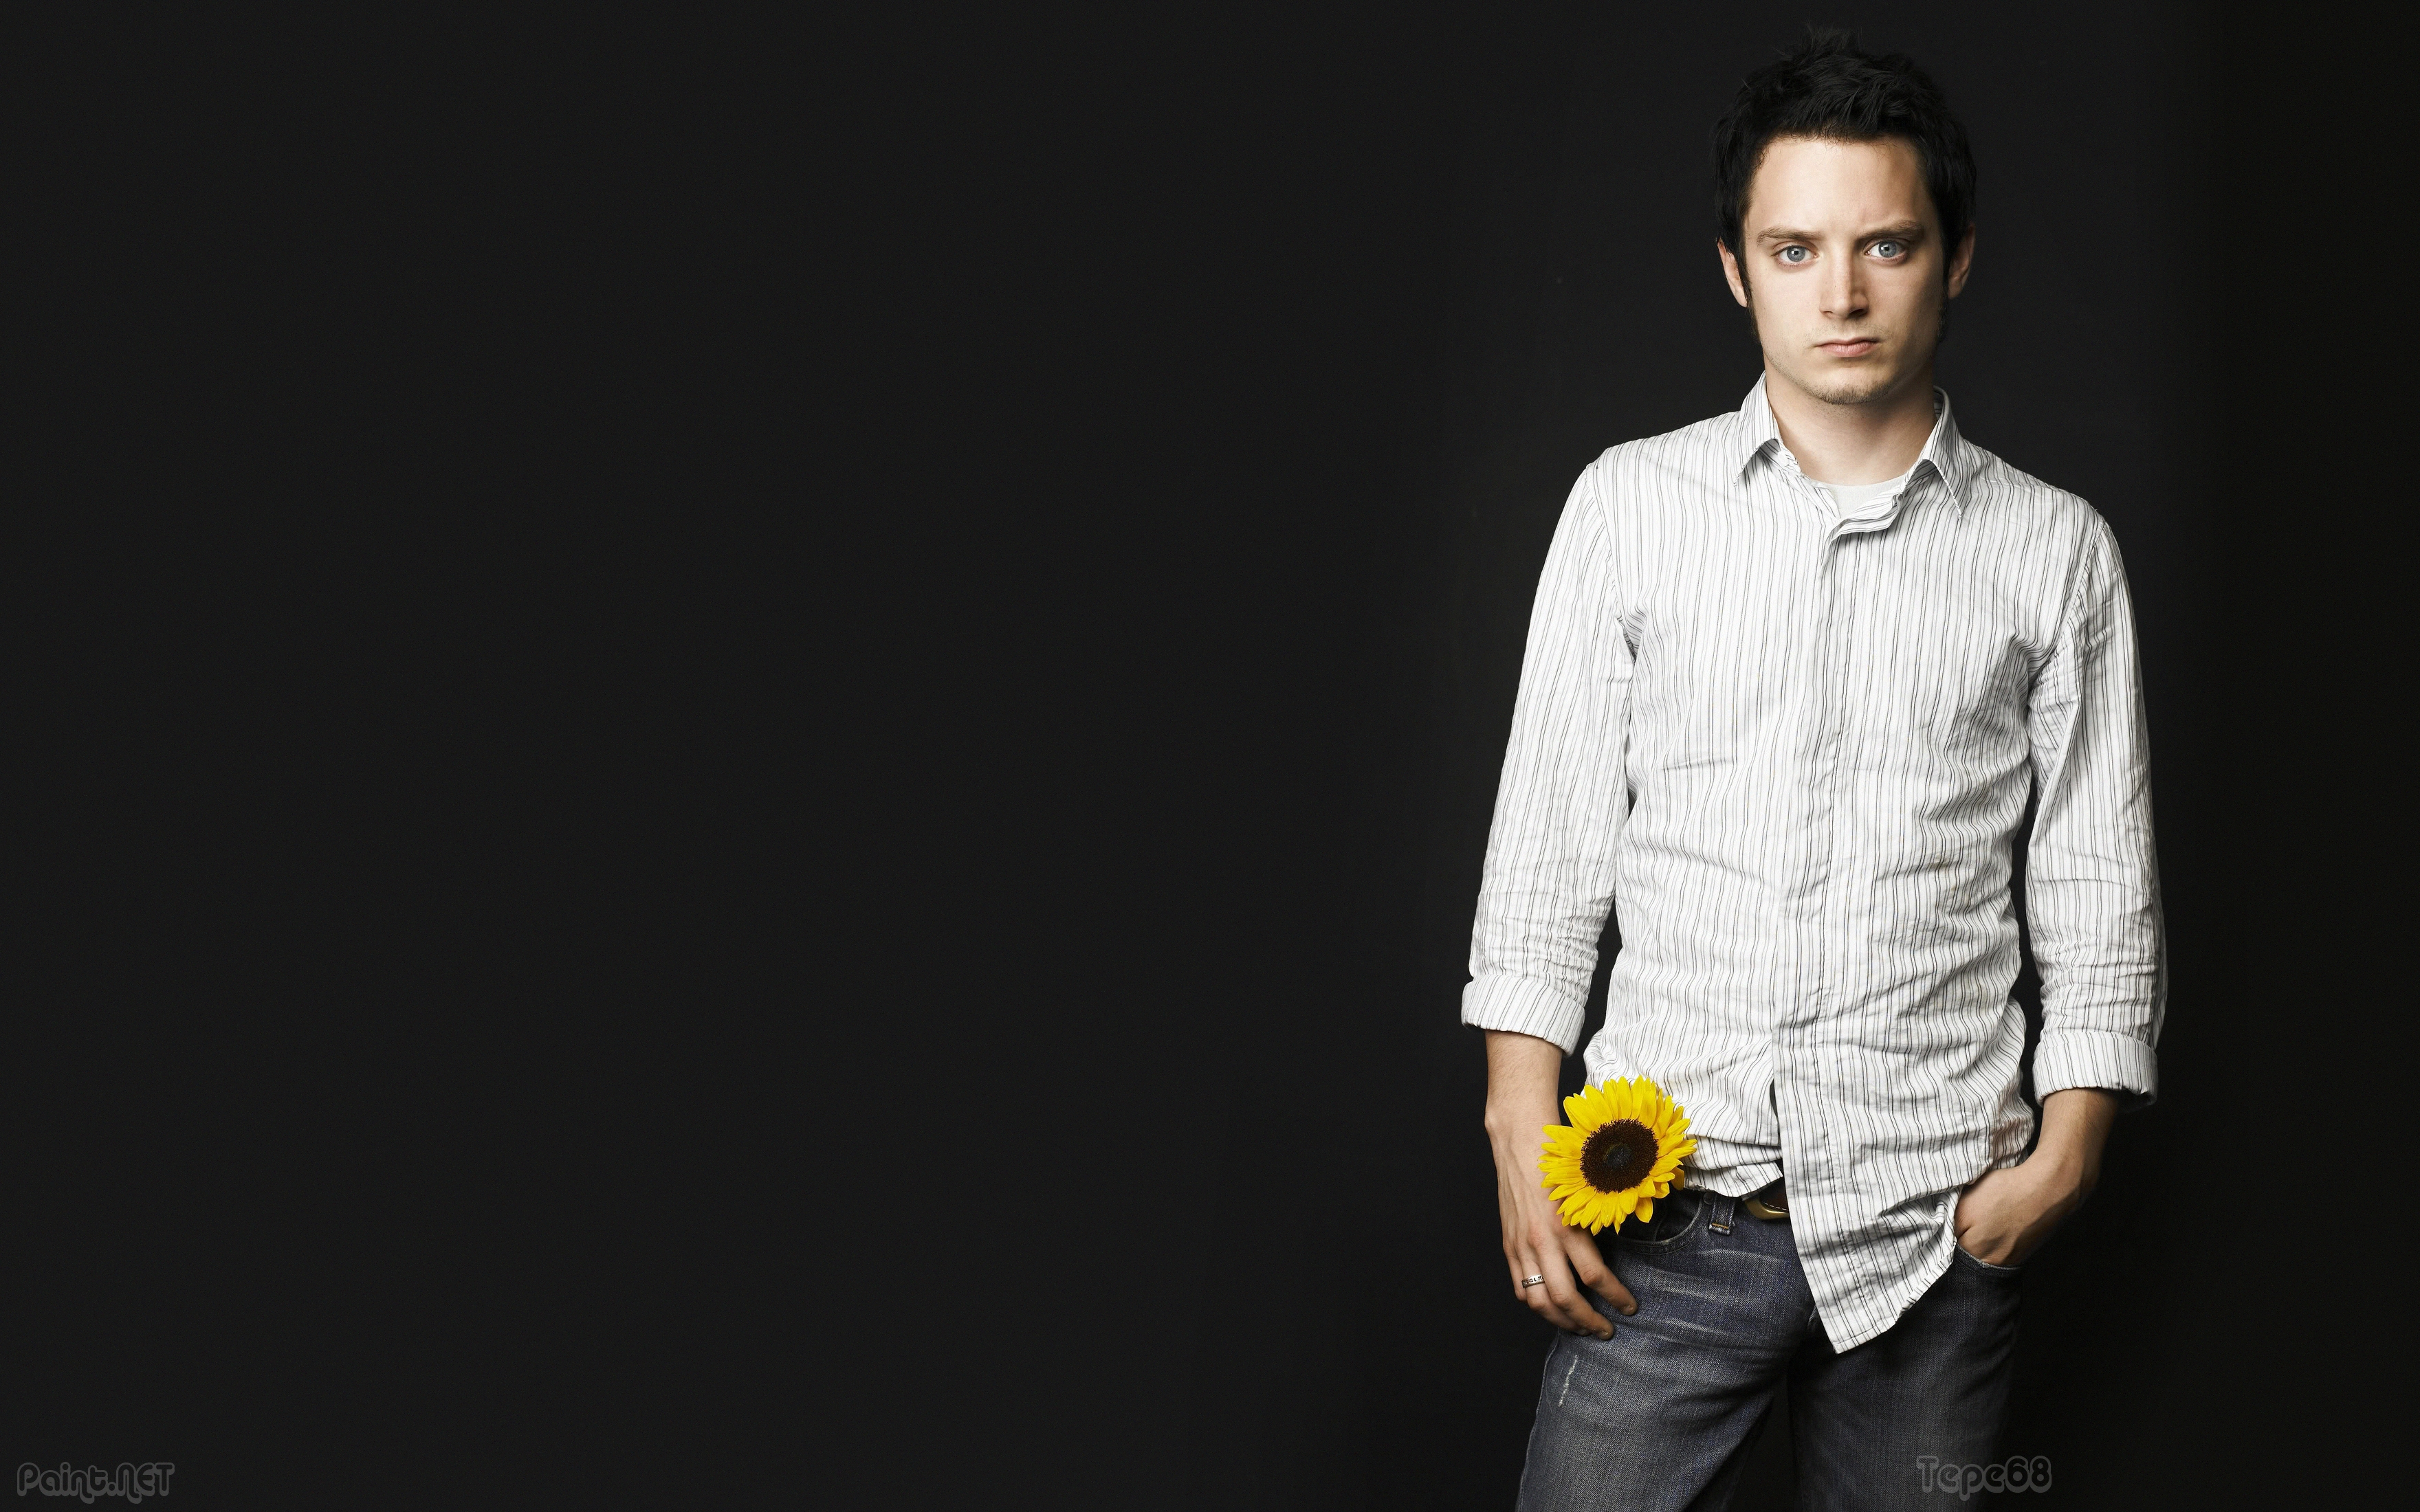 Elijah Wood Wallpapers High Resolution and Quality Download 3520x2200